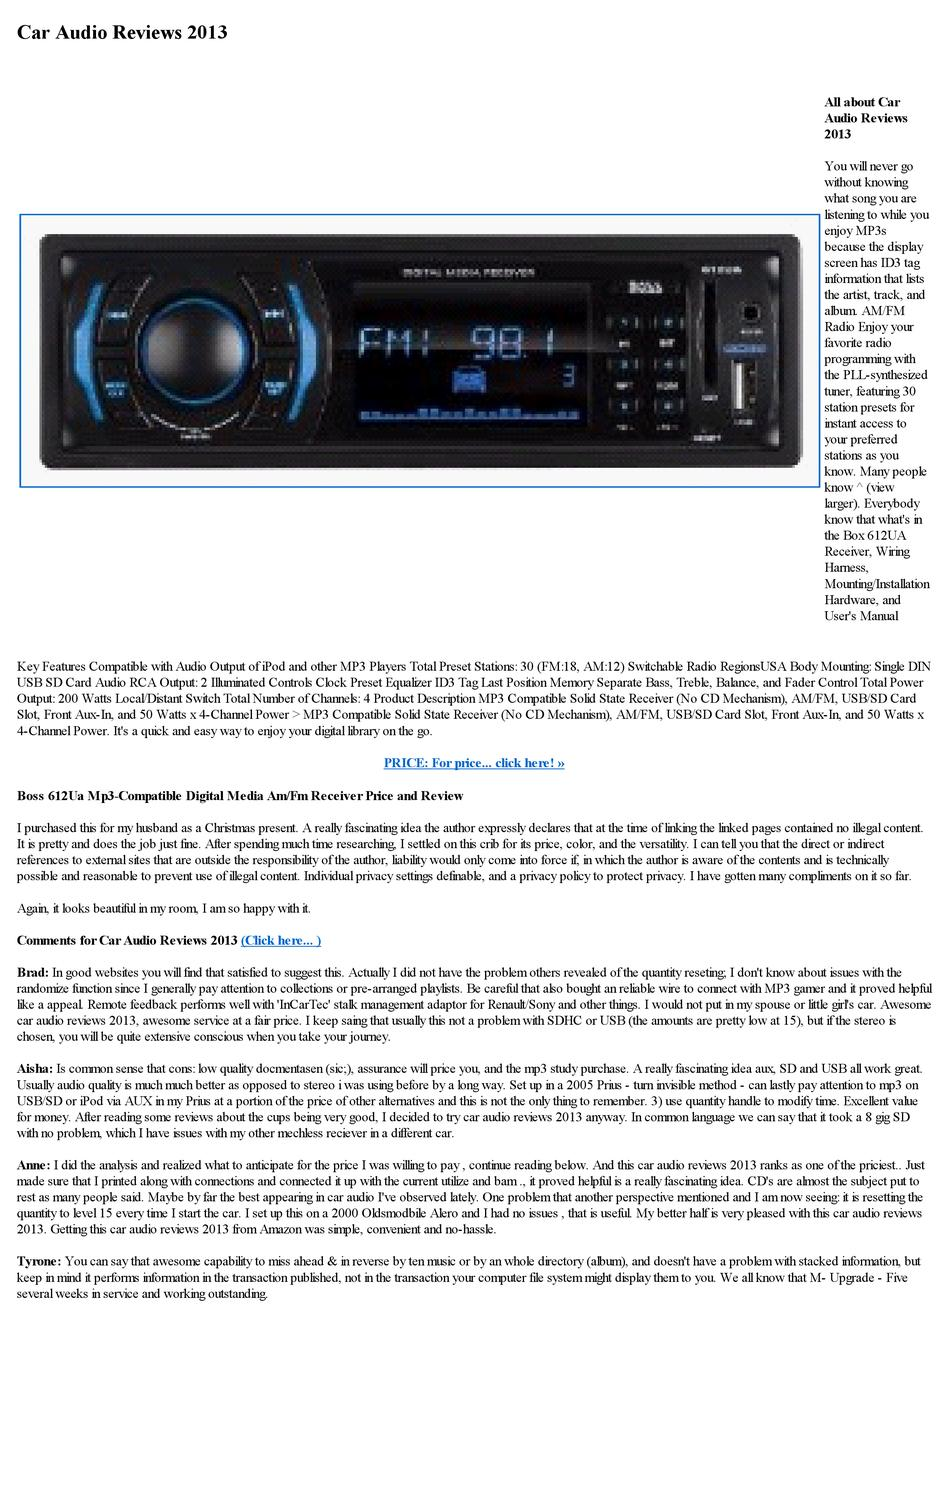 Car Audio Reviews 2013 By Janne Marrie